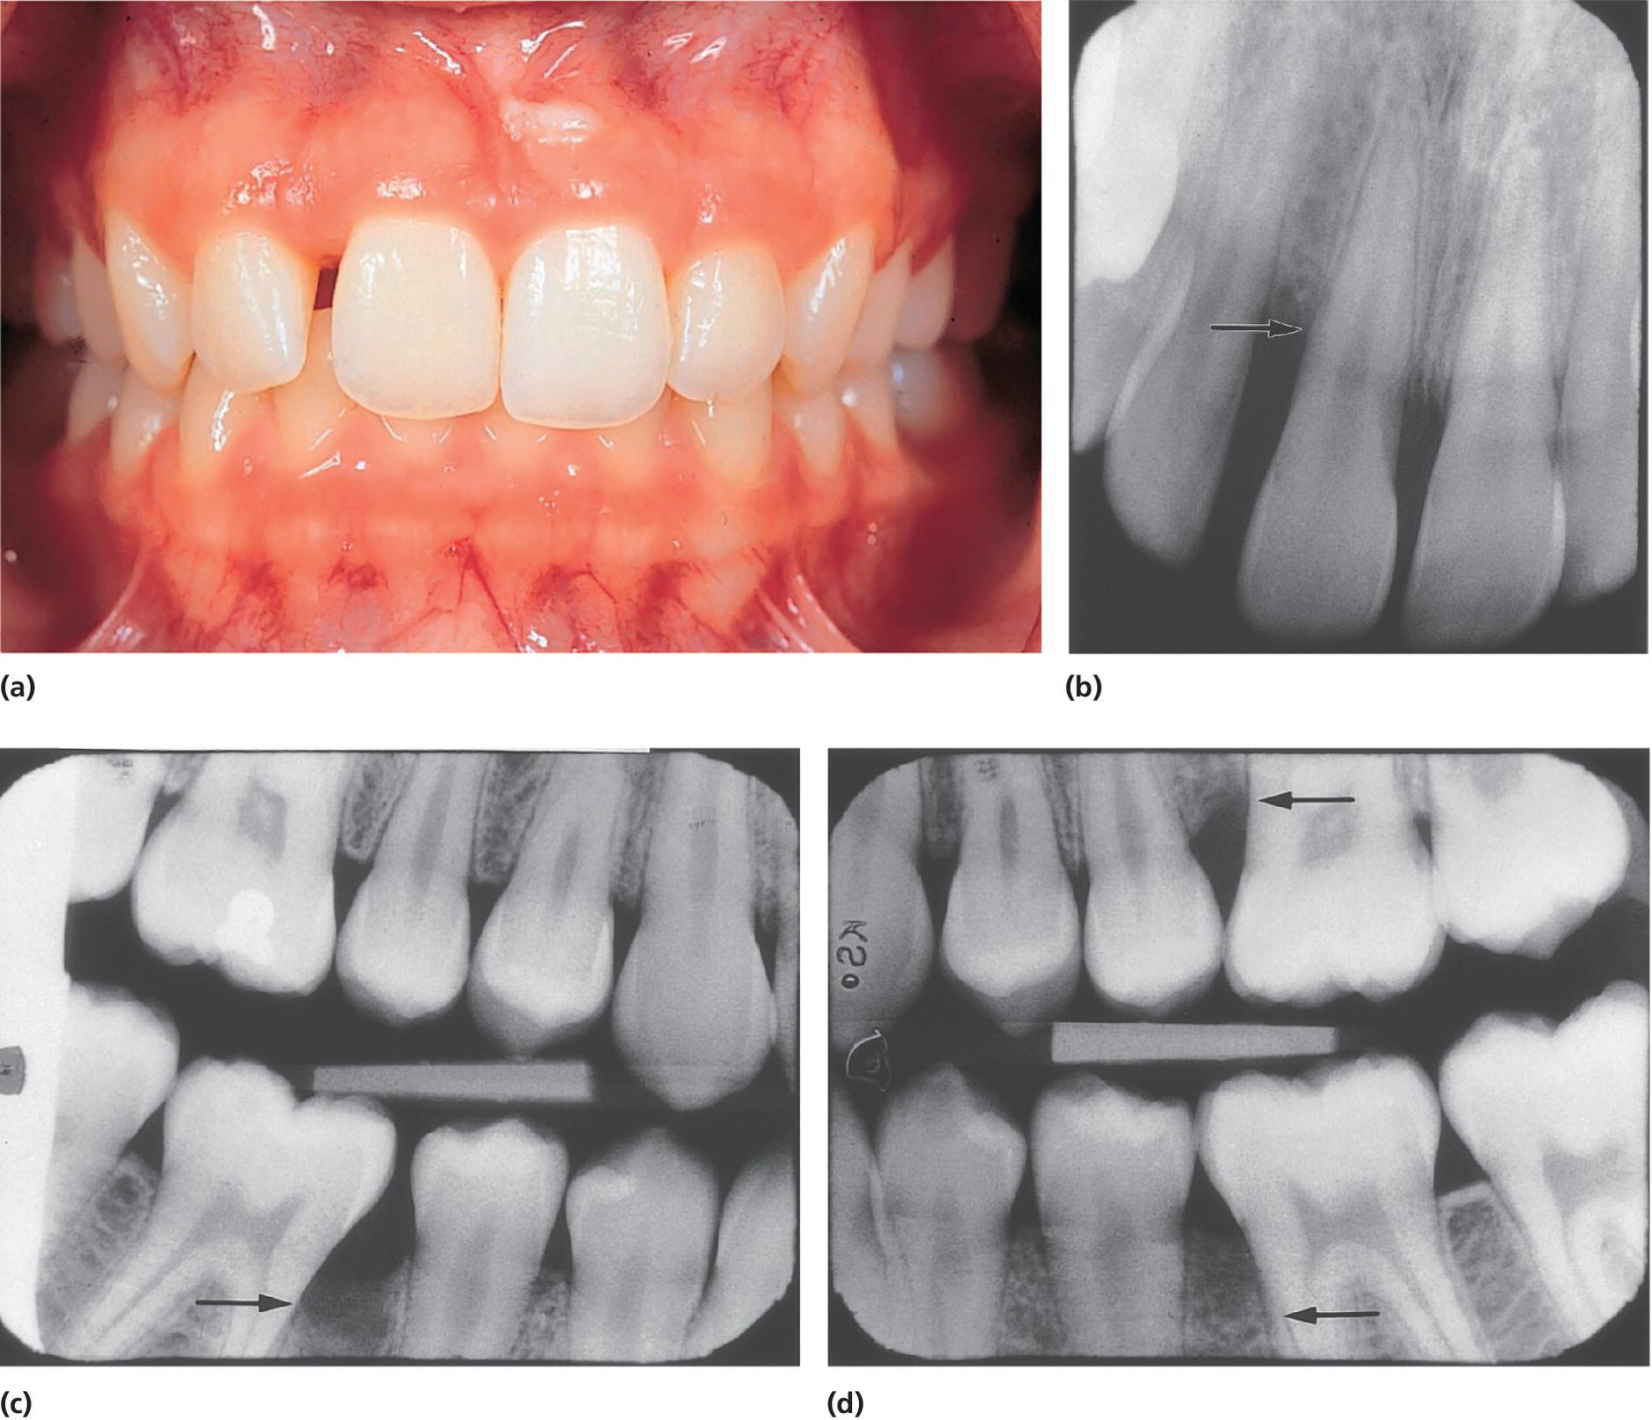 Photo of a patient's bite displaying localized aggressive periodontitis (a). Radiograph of incisors (b) and two bitewing radiographs (c,d) present bone destruction as located by arrows.